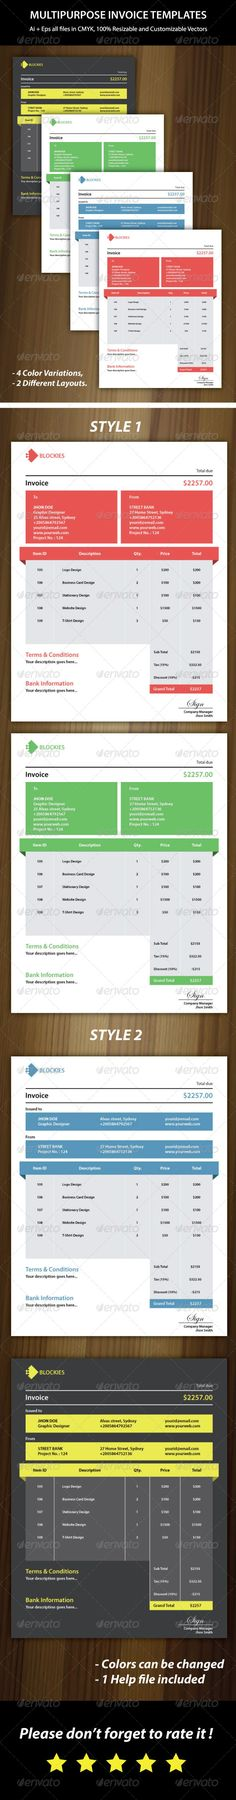 Corporate Invoice Ai illustrator, Business proposal and Cv template - invoice page